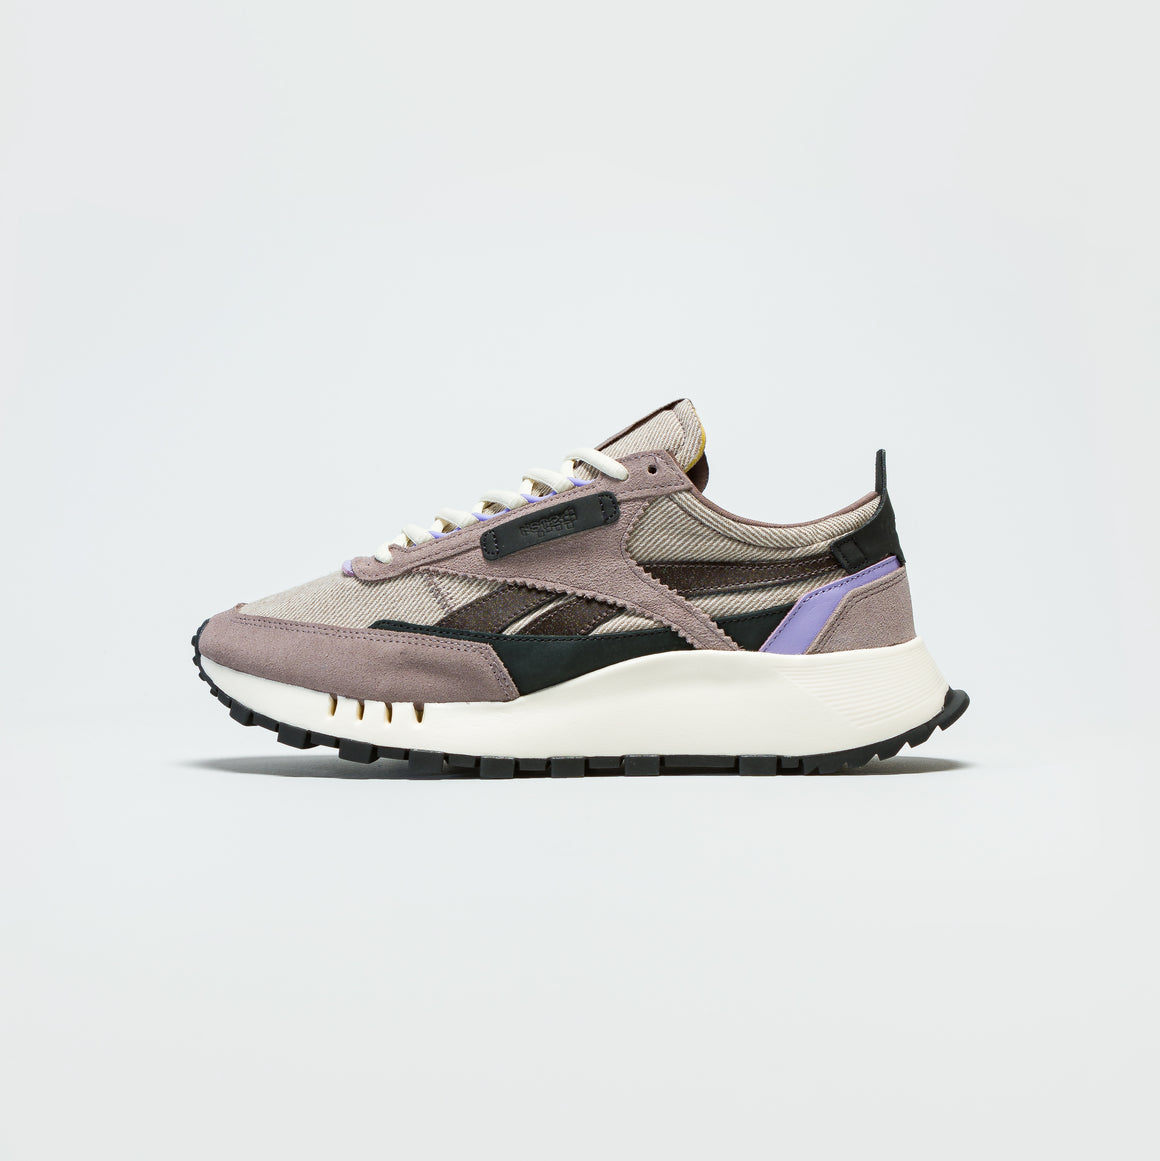 Reebok - CL Legacy x ASAP NAST - Sandy Taupe/Crisp Purple - Up There